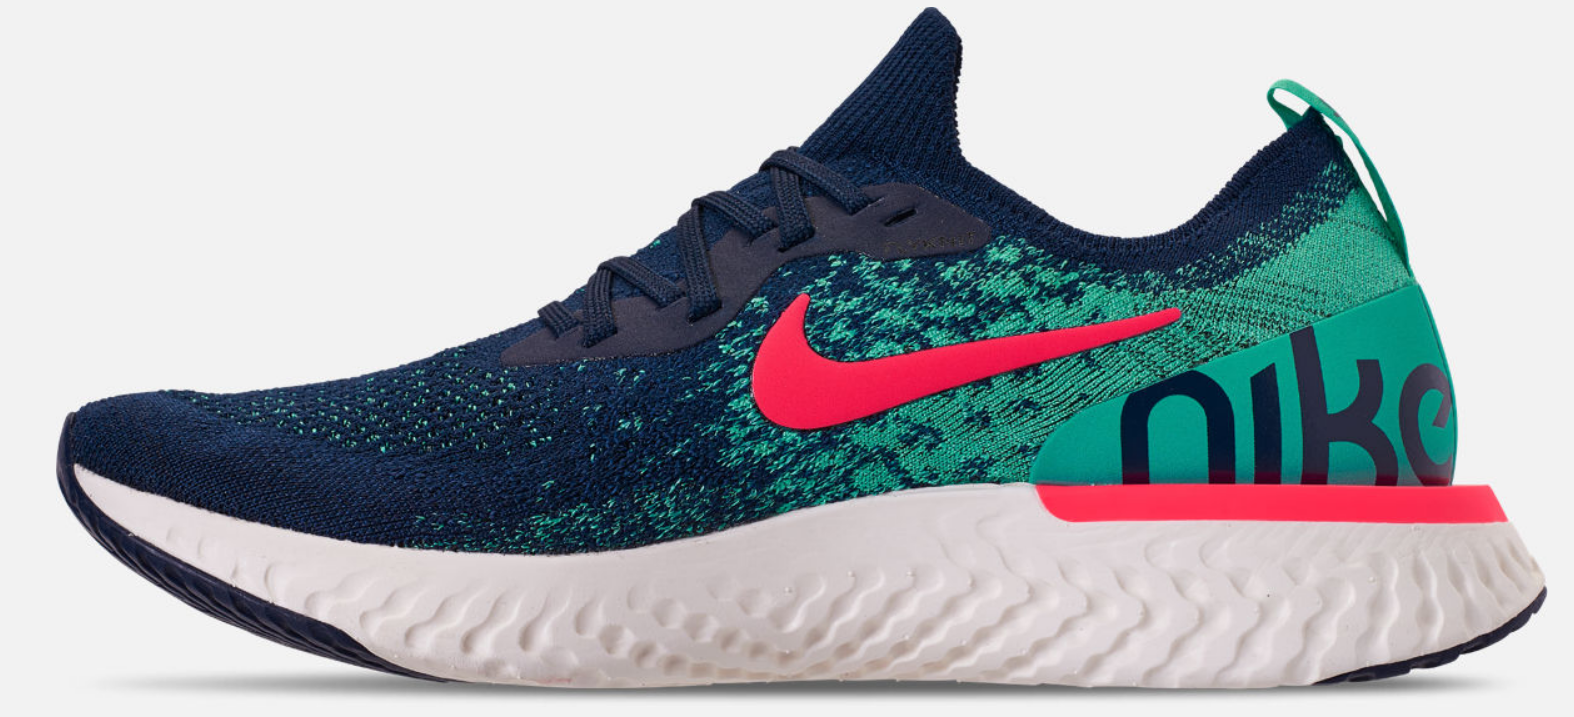 Nike Epic React Flyknit Size US 12 M (D) EU 46 Men's Running Shoes AR5413-400 image 3